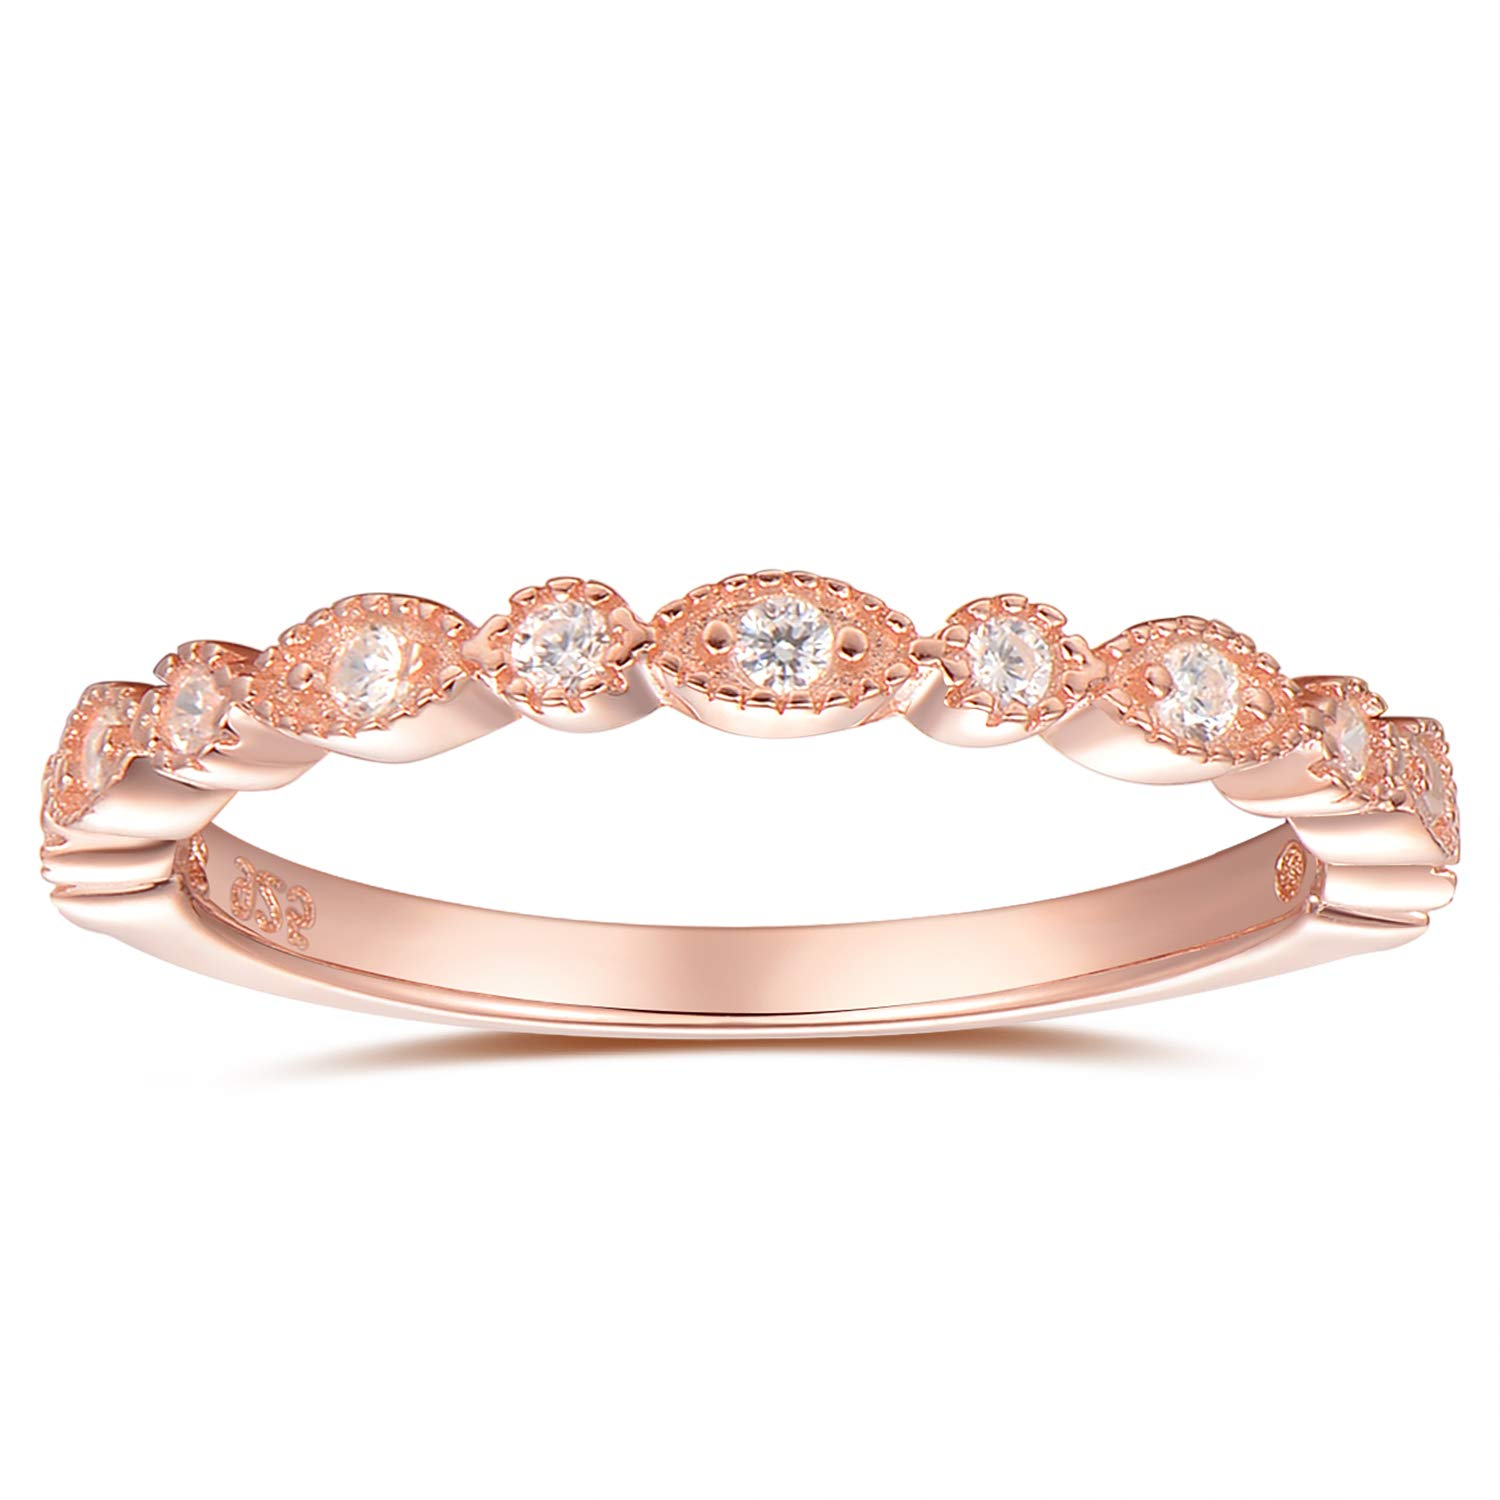 espere Milgrain Marquise /& Round Cubic Zirconia Eternity Ring Stacking Infinity Wedding Band Sterling Silver Platium Plated or Rose Gold Plated Size 4-9